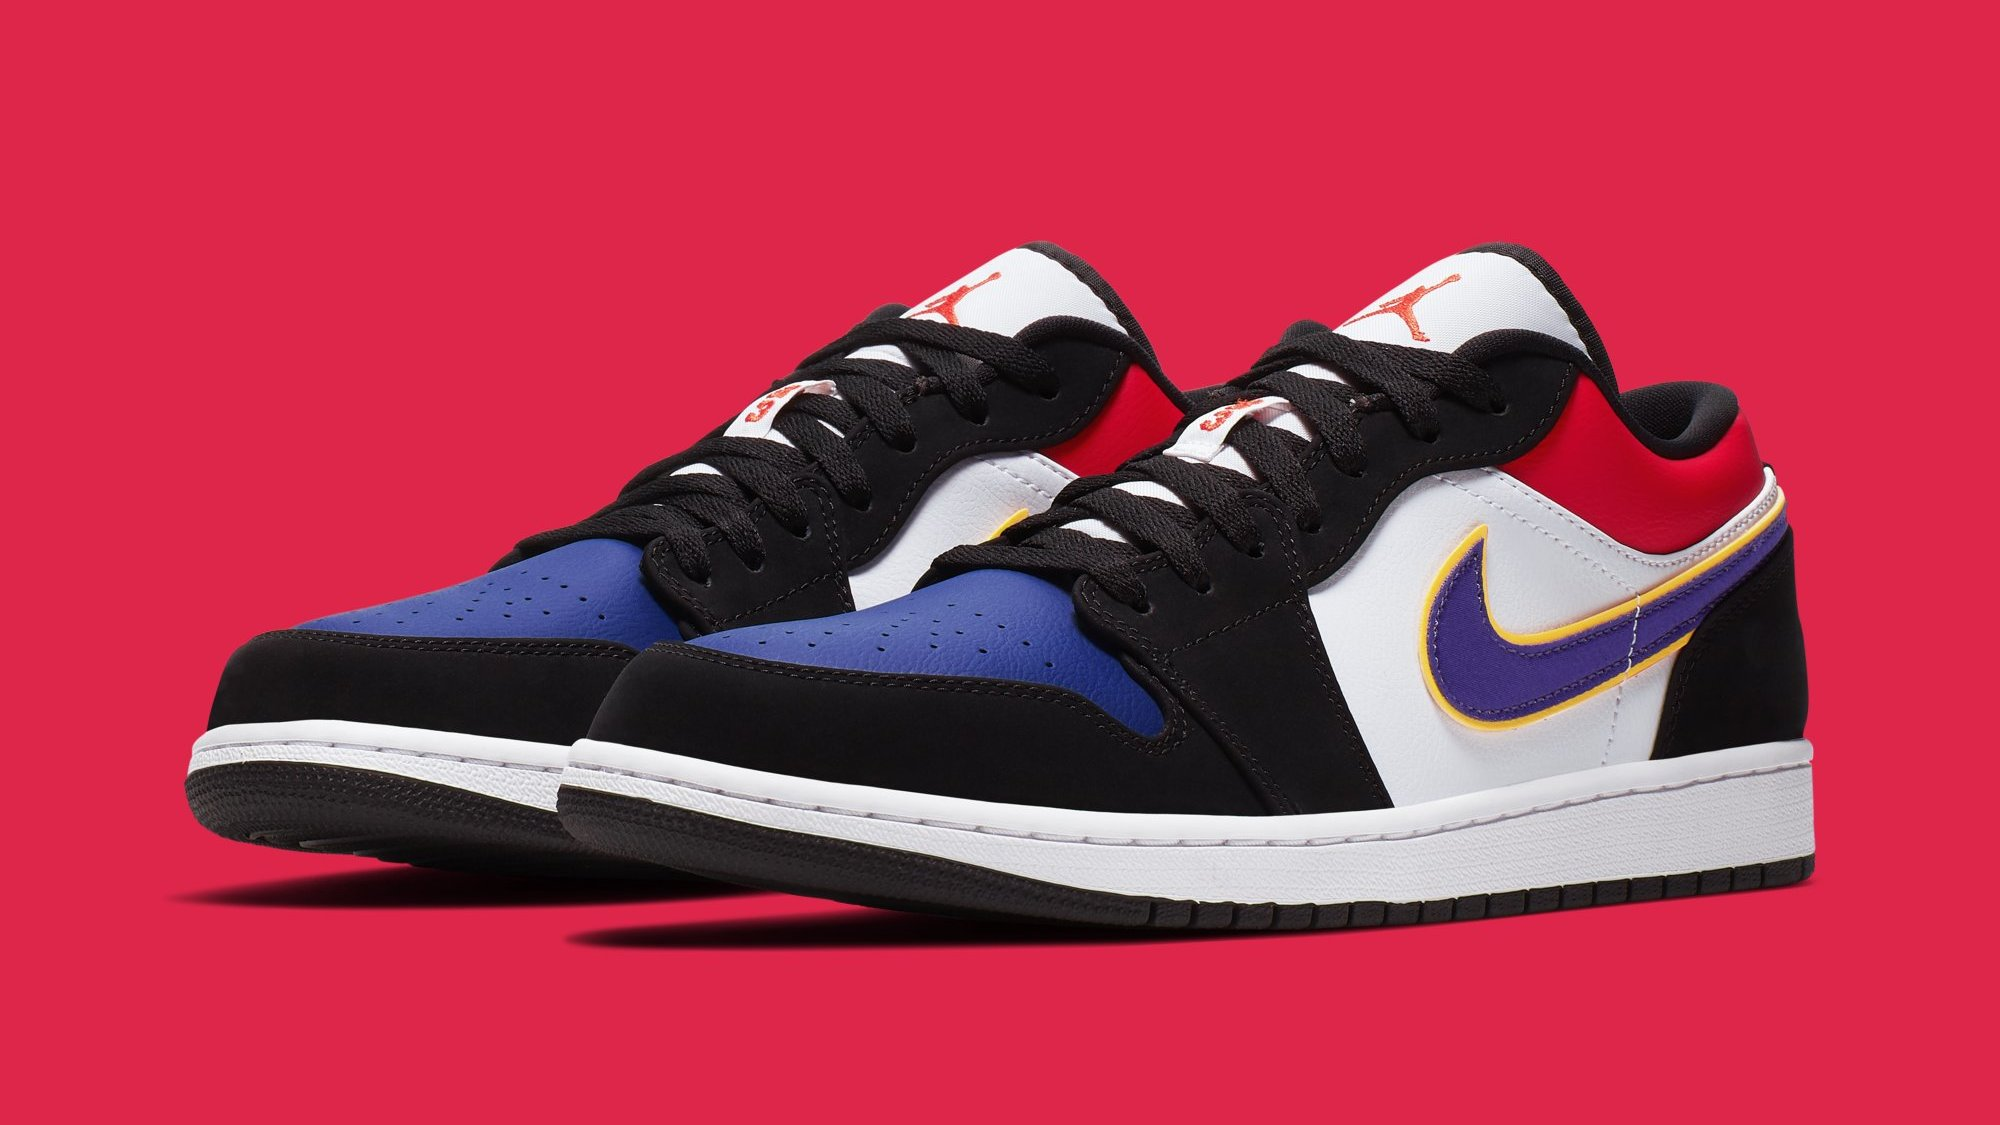 Air Jordan 1 Low CJ9216-051 Release Date | Sole Collector